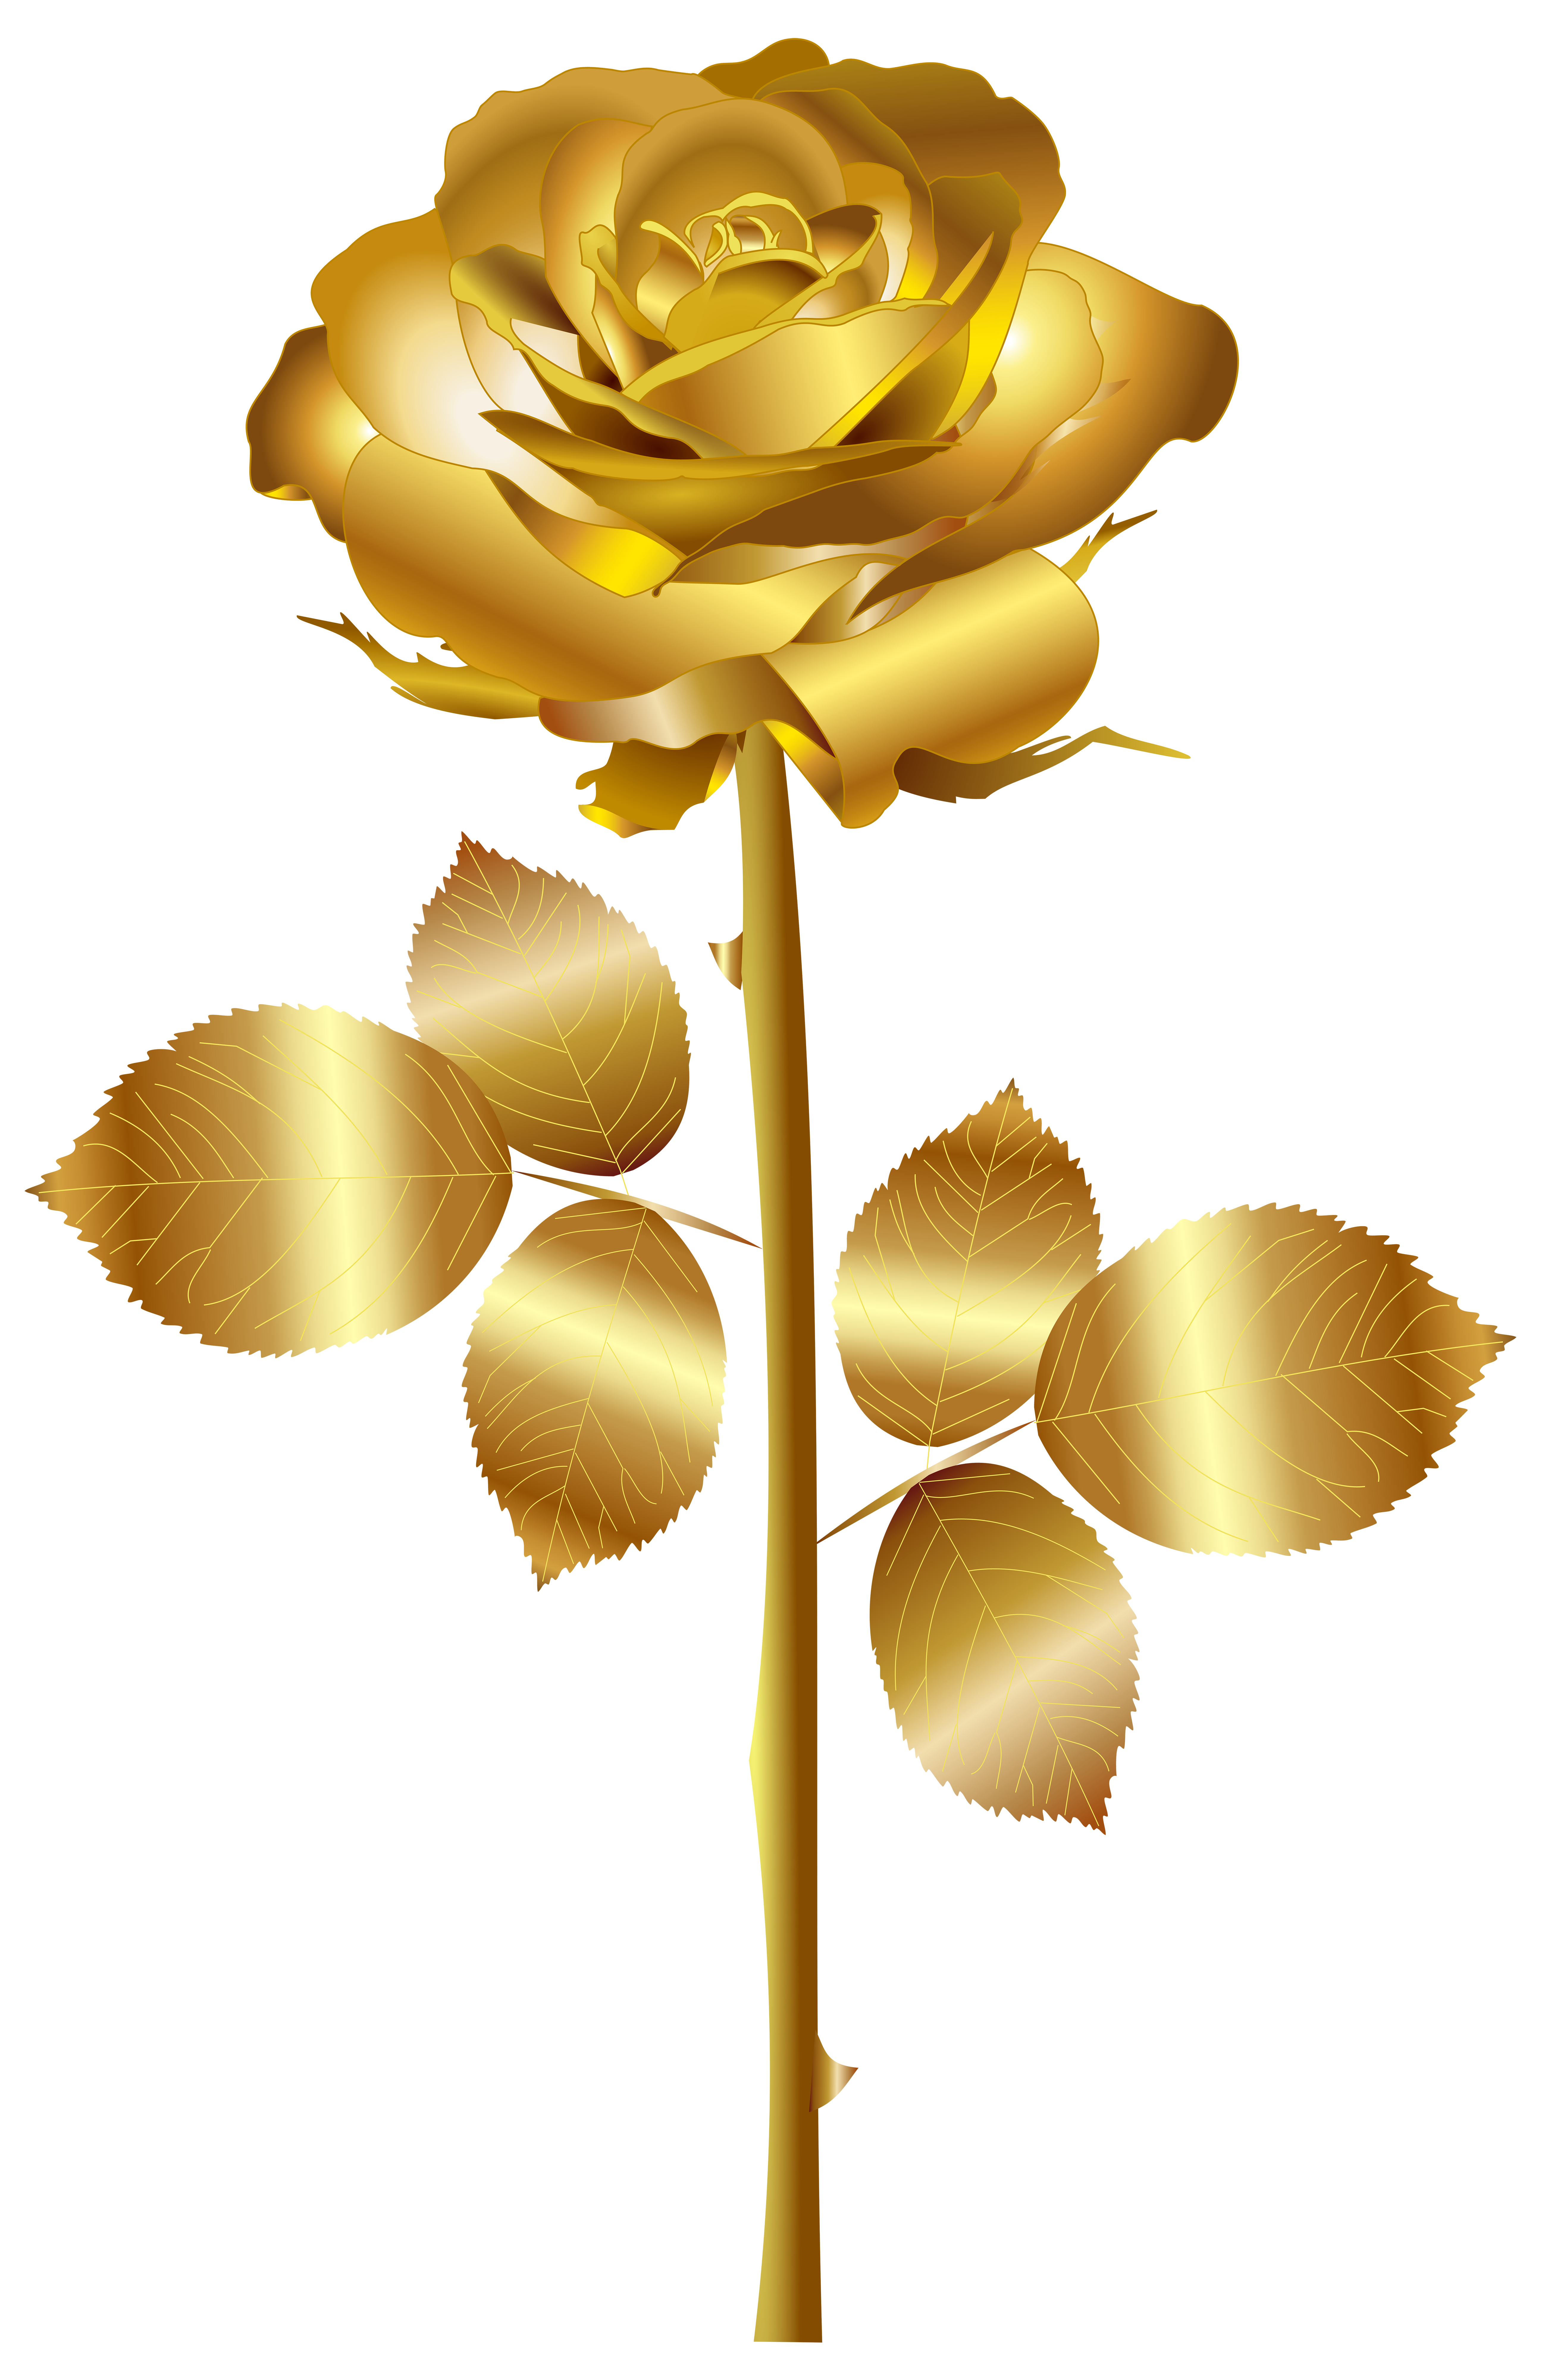 Clip from gold. Rose png art image